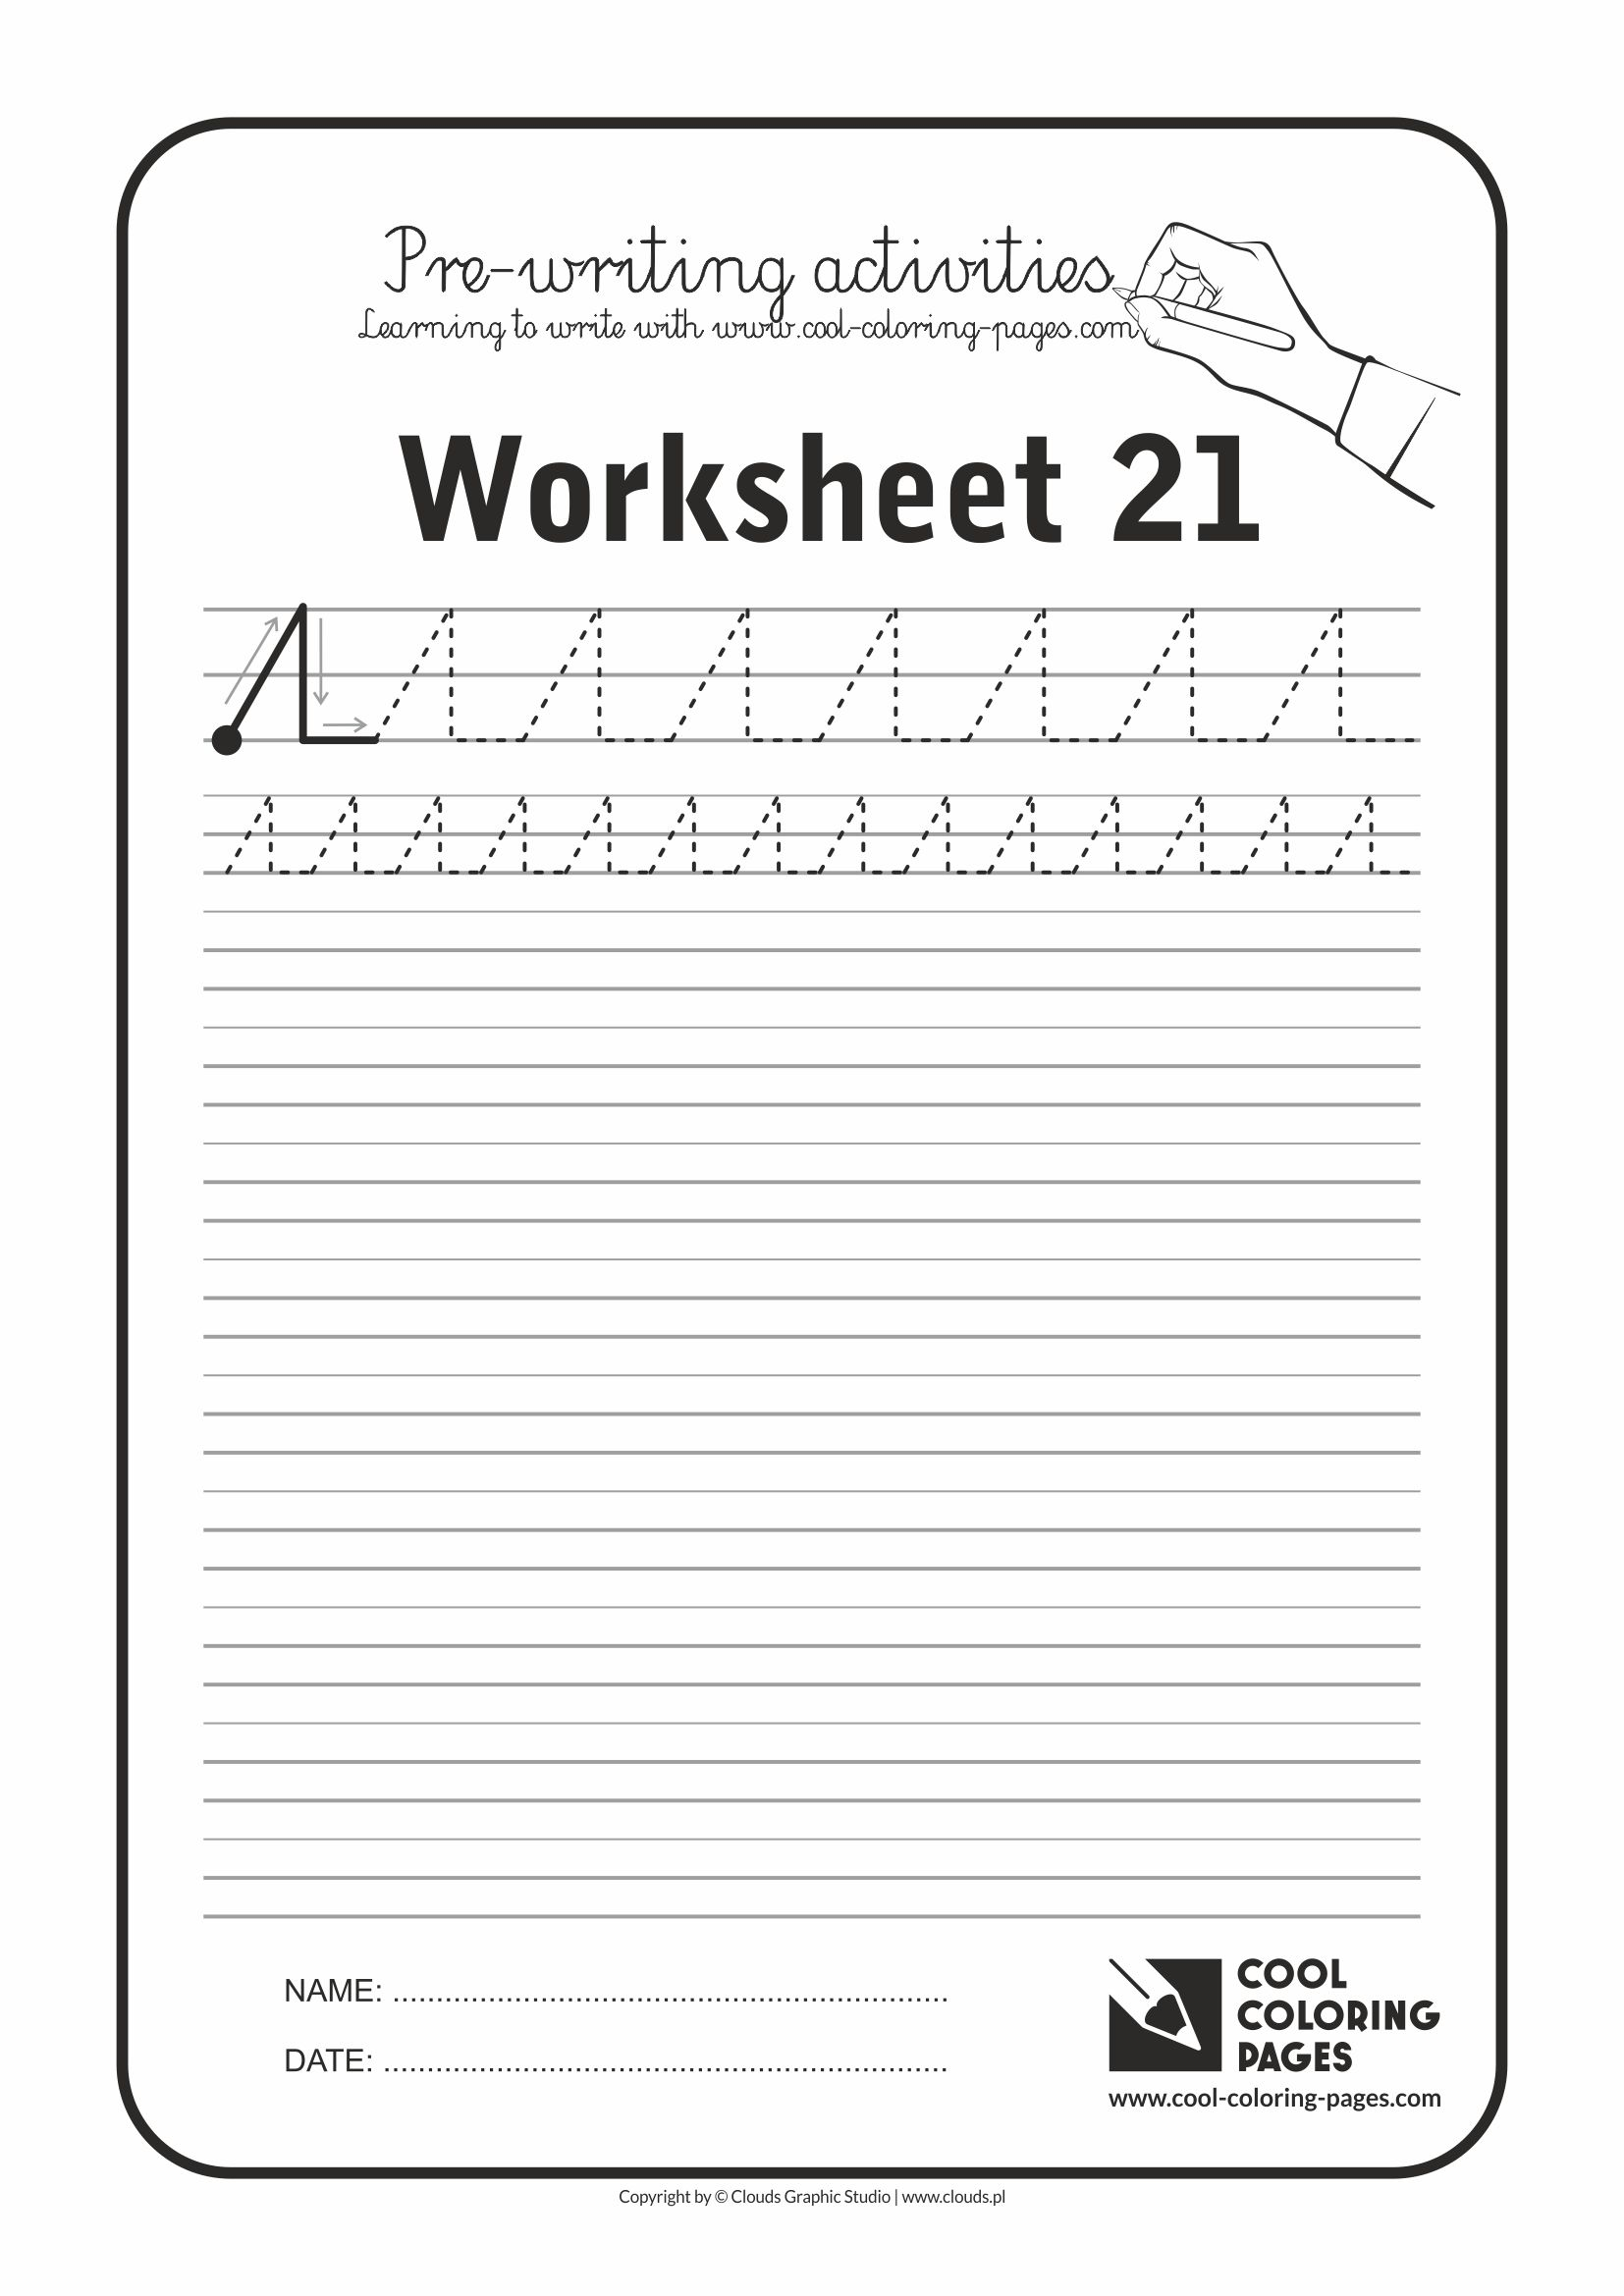 Cool Coloring Pages / Pre-writing activities / Worksheet no.21